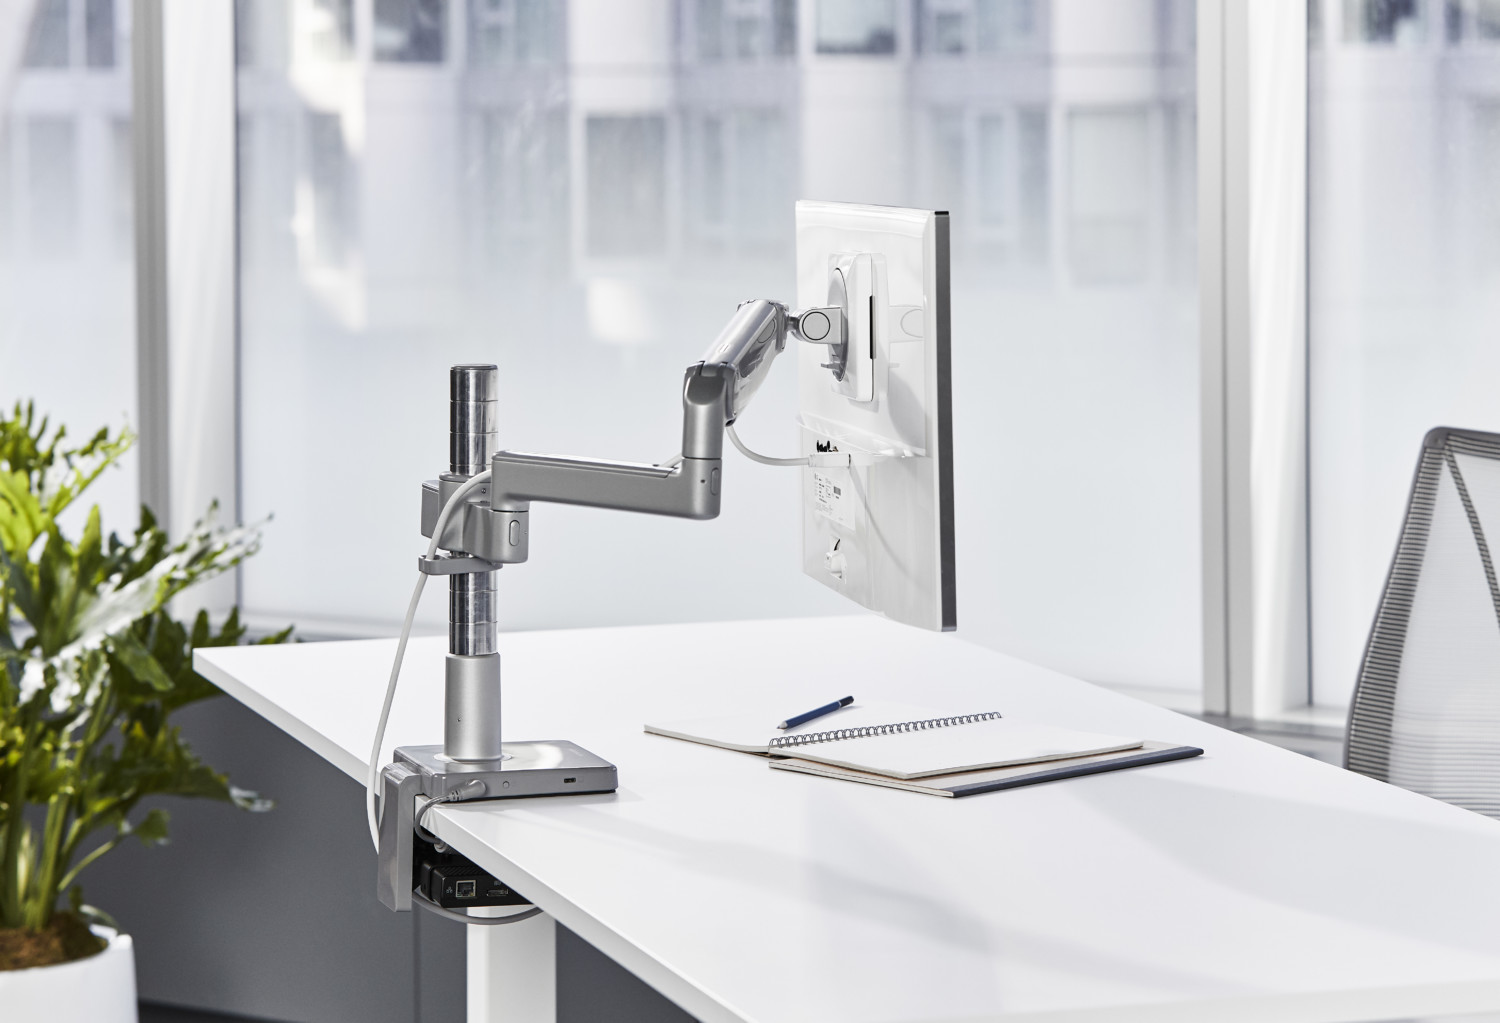 Humanscale has upgraded its range of monitor arms and is introducing two brand new models this October.